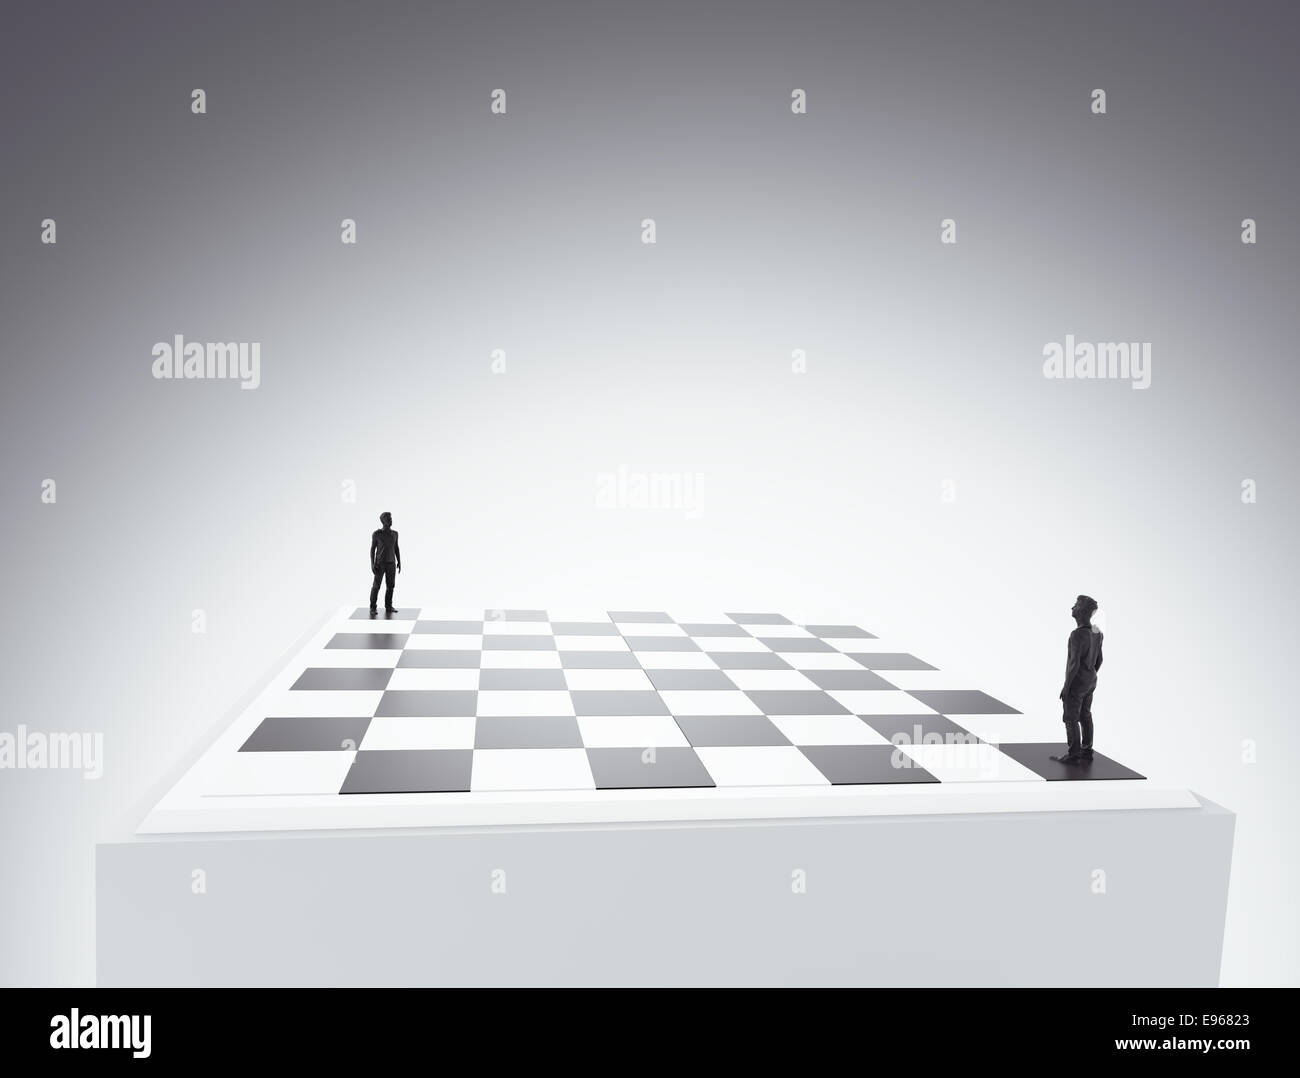 Two tiny figures standing on a chess board - conflict and competition concept illustration - Stock Image